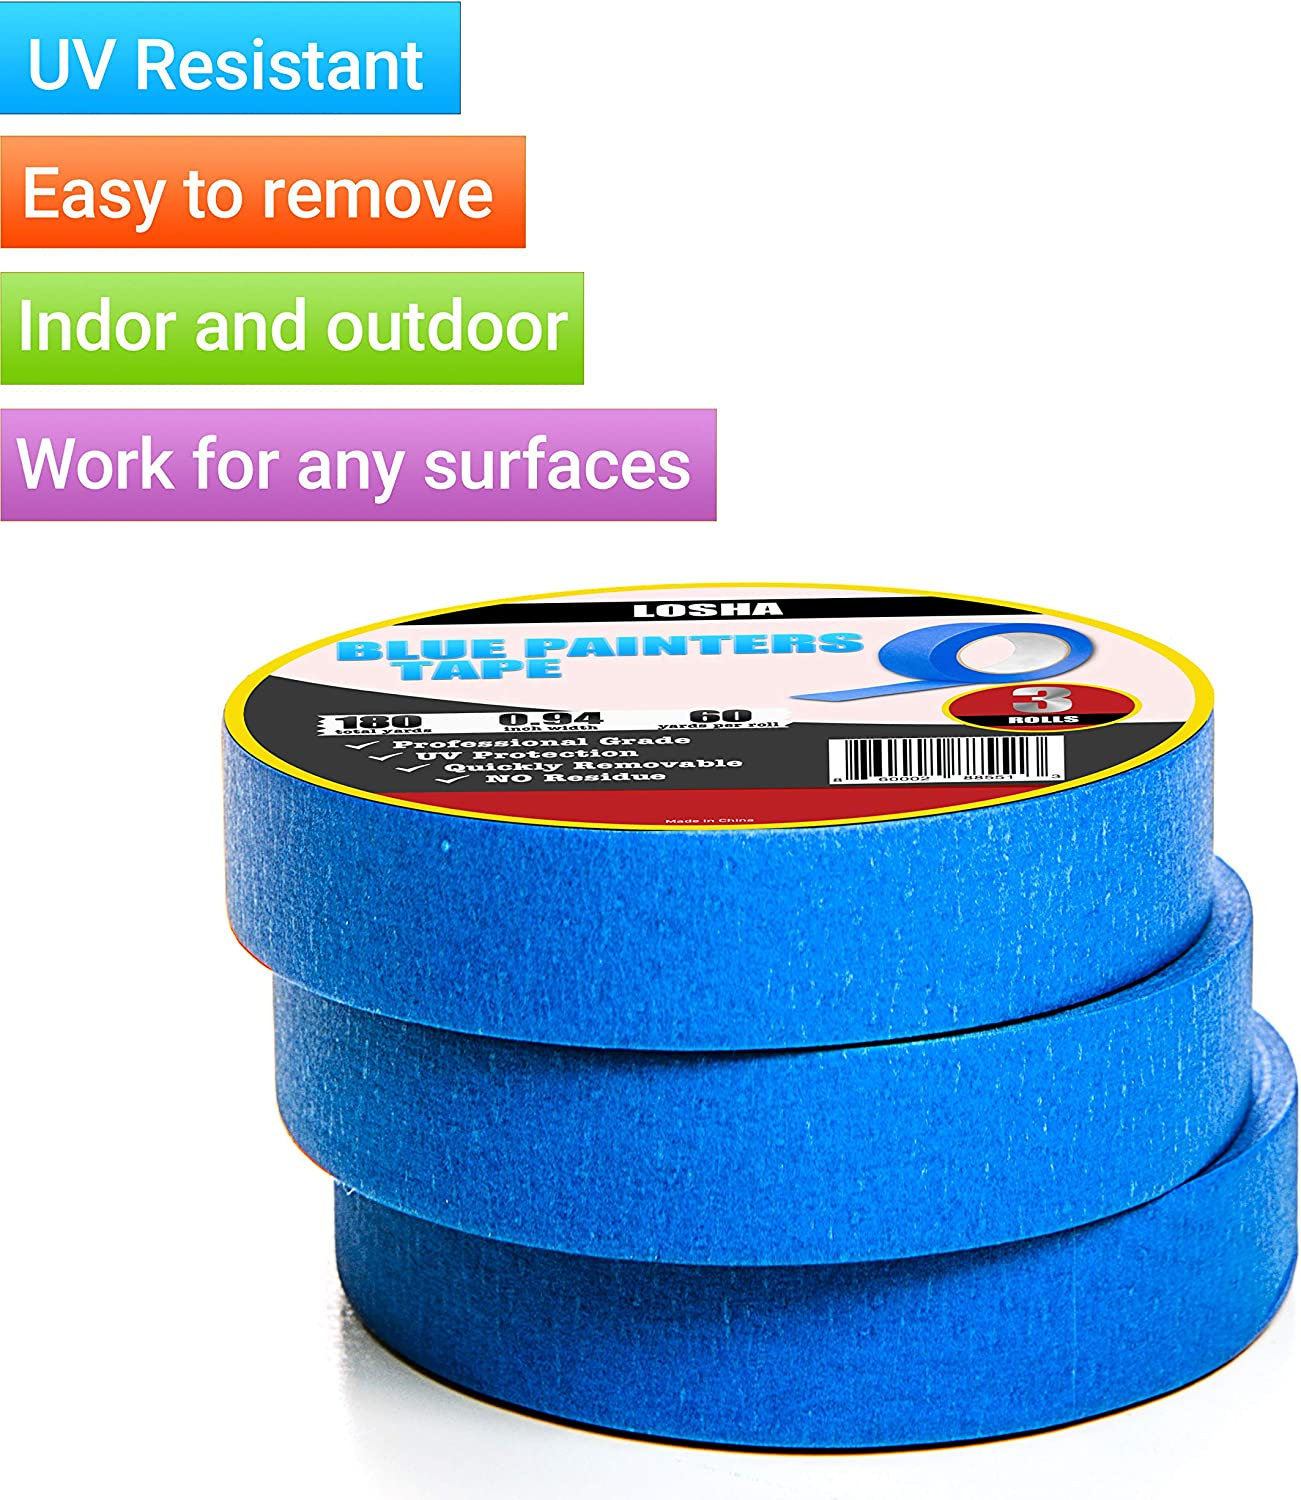 180 Yards Total 3 Rolls.94, 60 Yrd//roll Blue Painters Tape 1 Inch Professional Grade Multi-Surface UV Resistant Masking Tape